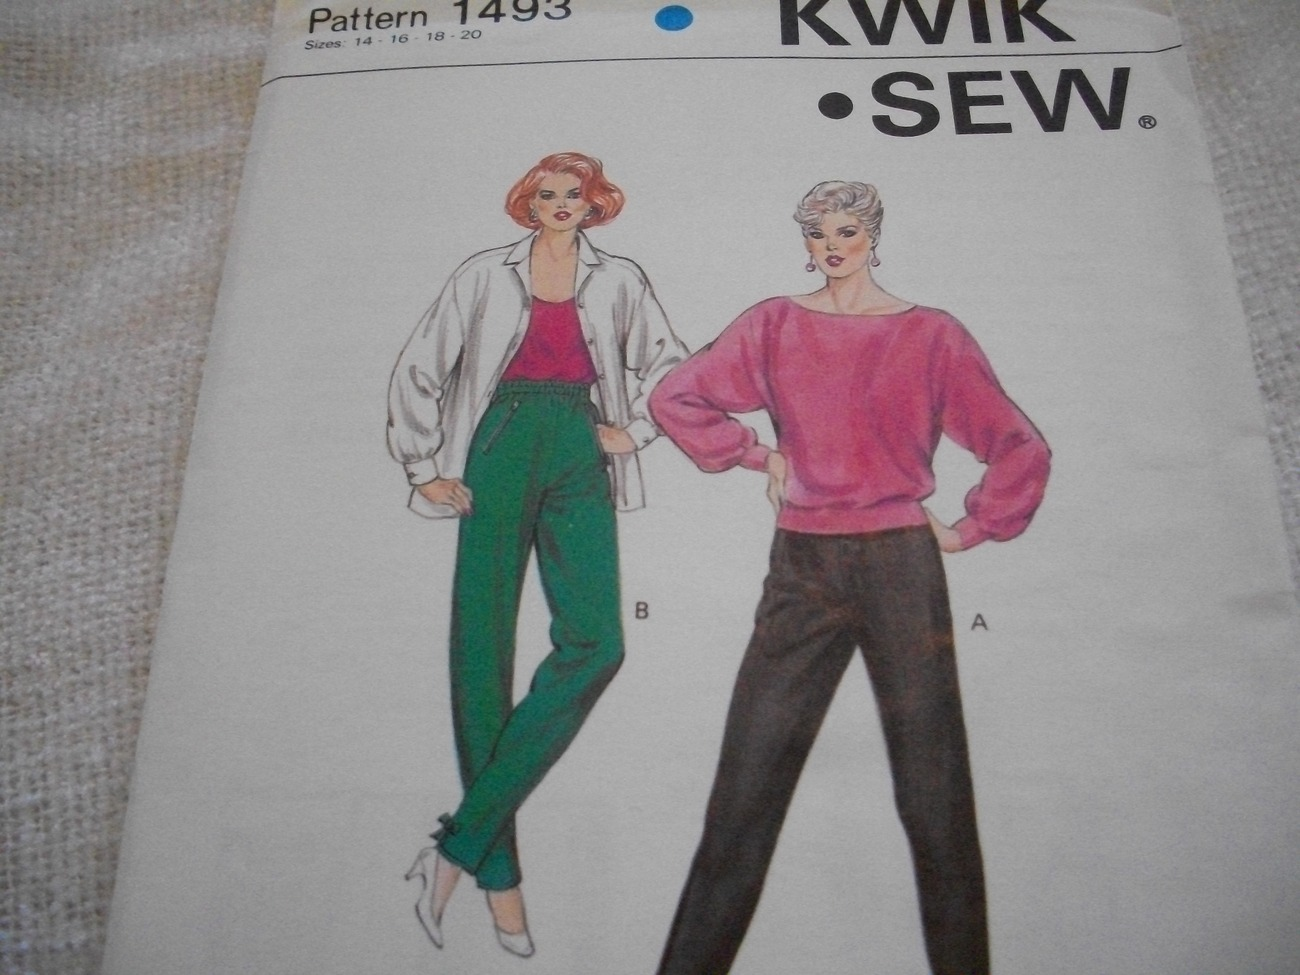 Primary image for Misses' Pullon Pants Pattern Kwik Sew 1493